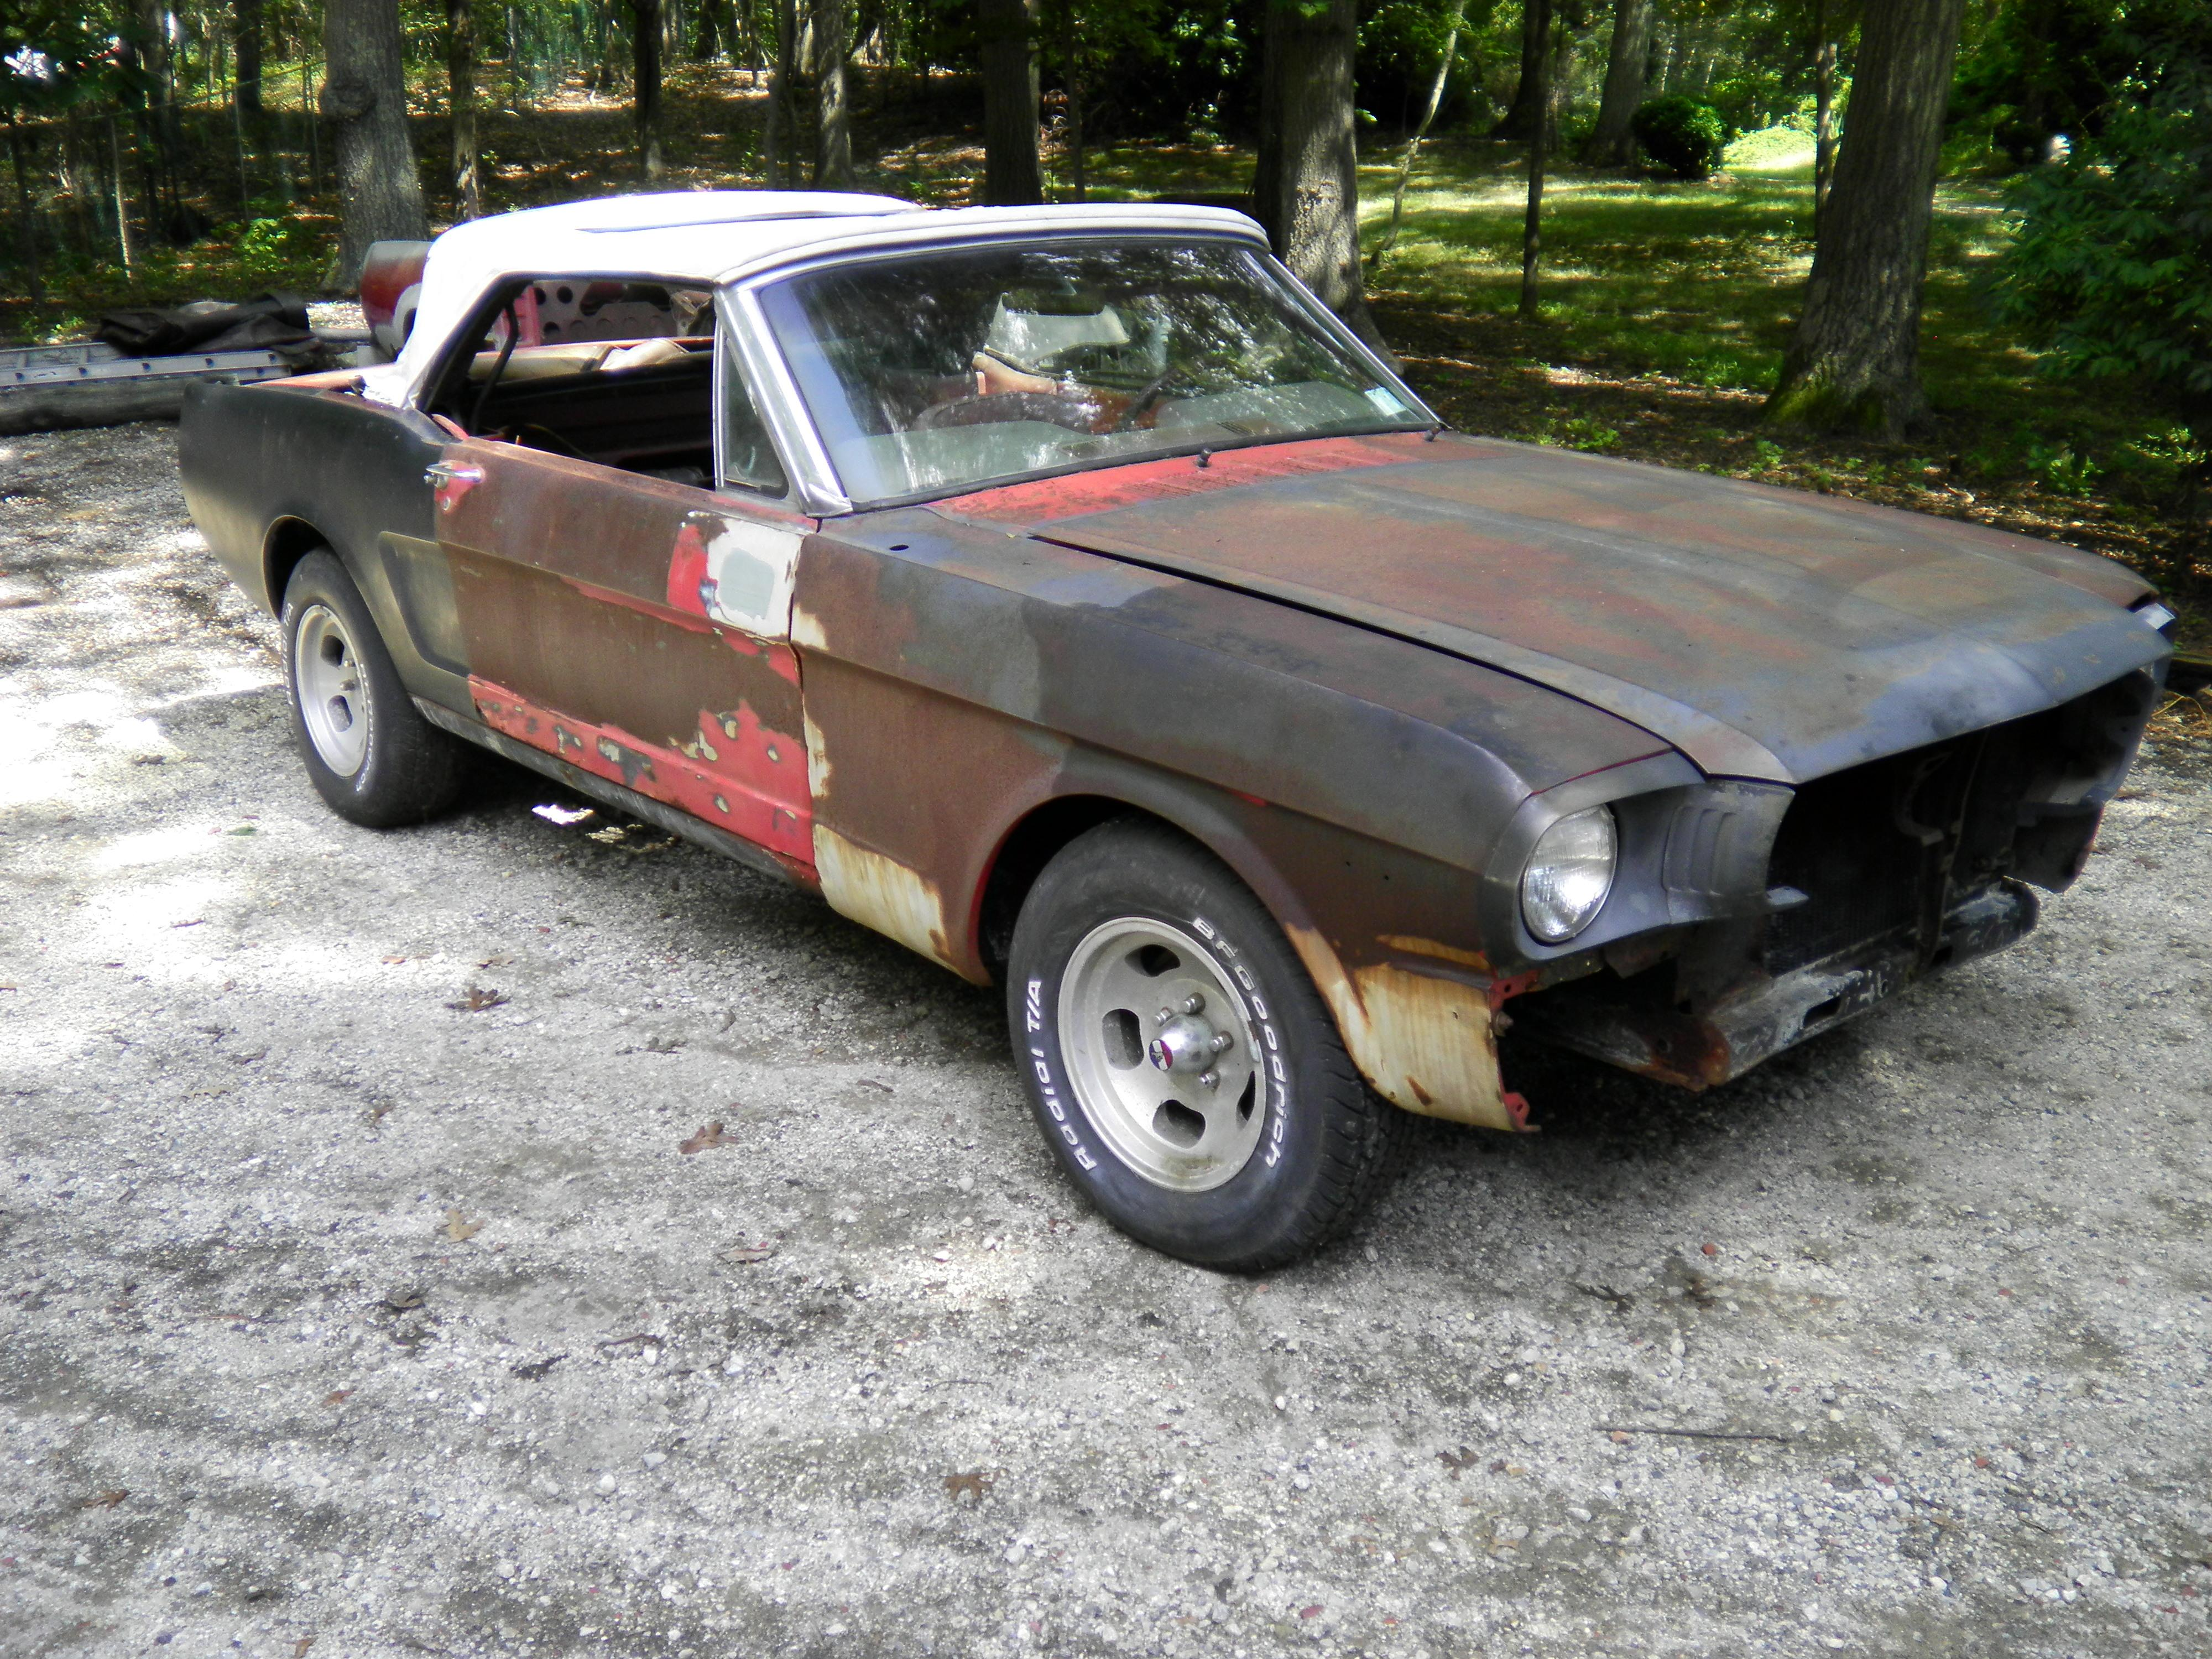 71steed 1973 Ford Mustang Specs s Modification Info at CarDomain